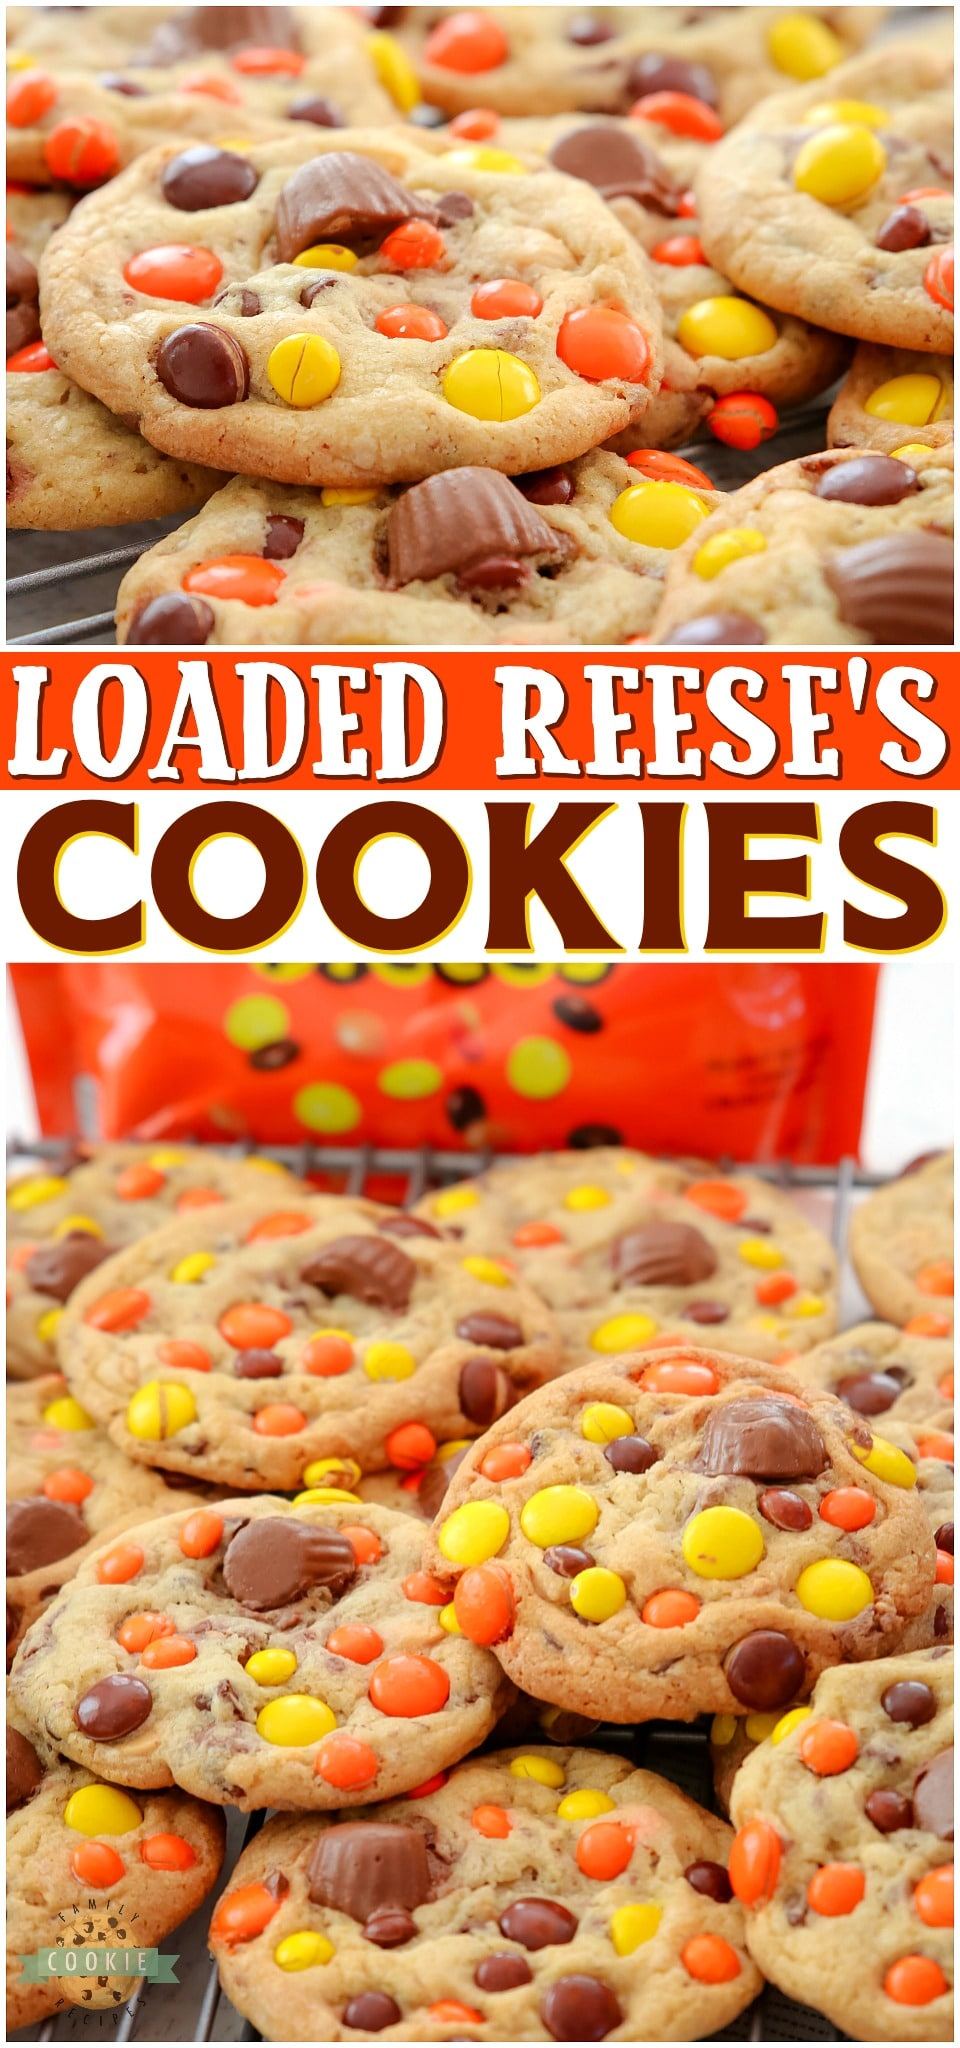 Loaded Reese's Pieces Cookies PERFECT for Reese's Peanut Butter Cup lovers! Soft & buttery cookies packed with Reese's Pieces & topped with mini PB cups for an over-the-top Reese's dessert!